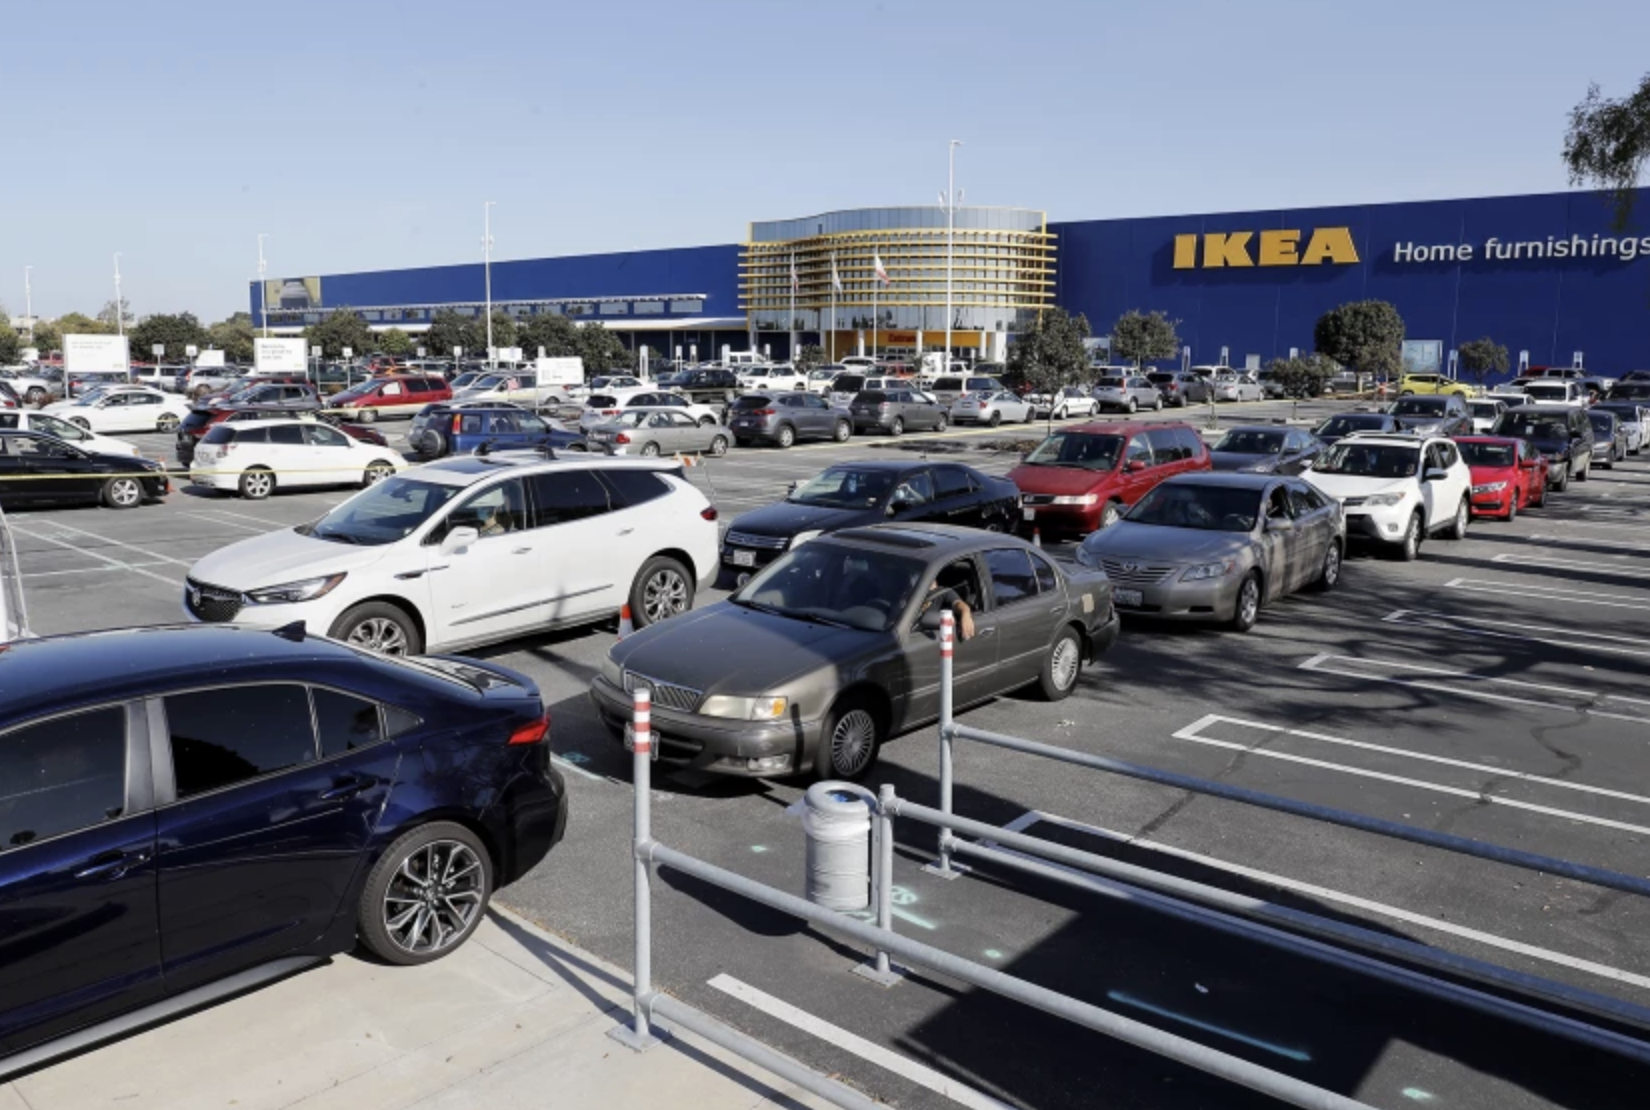 A new permanent bridge shelter in Costa Mesa, furnished by IKEA, will open to clients in March